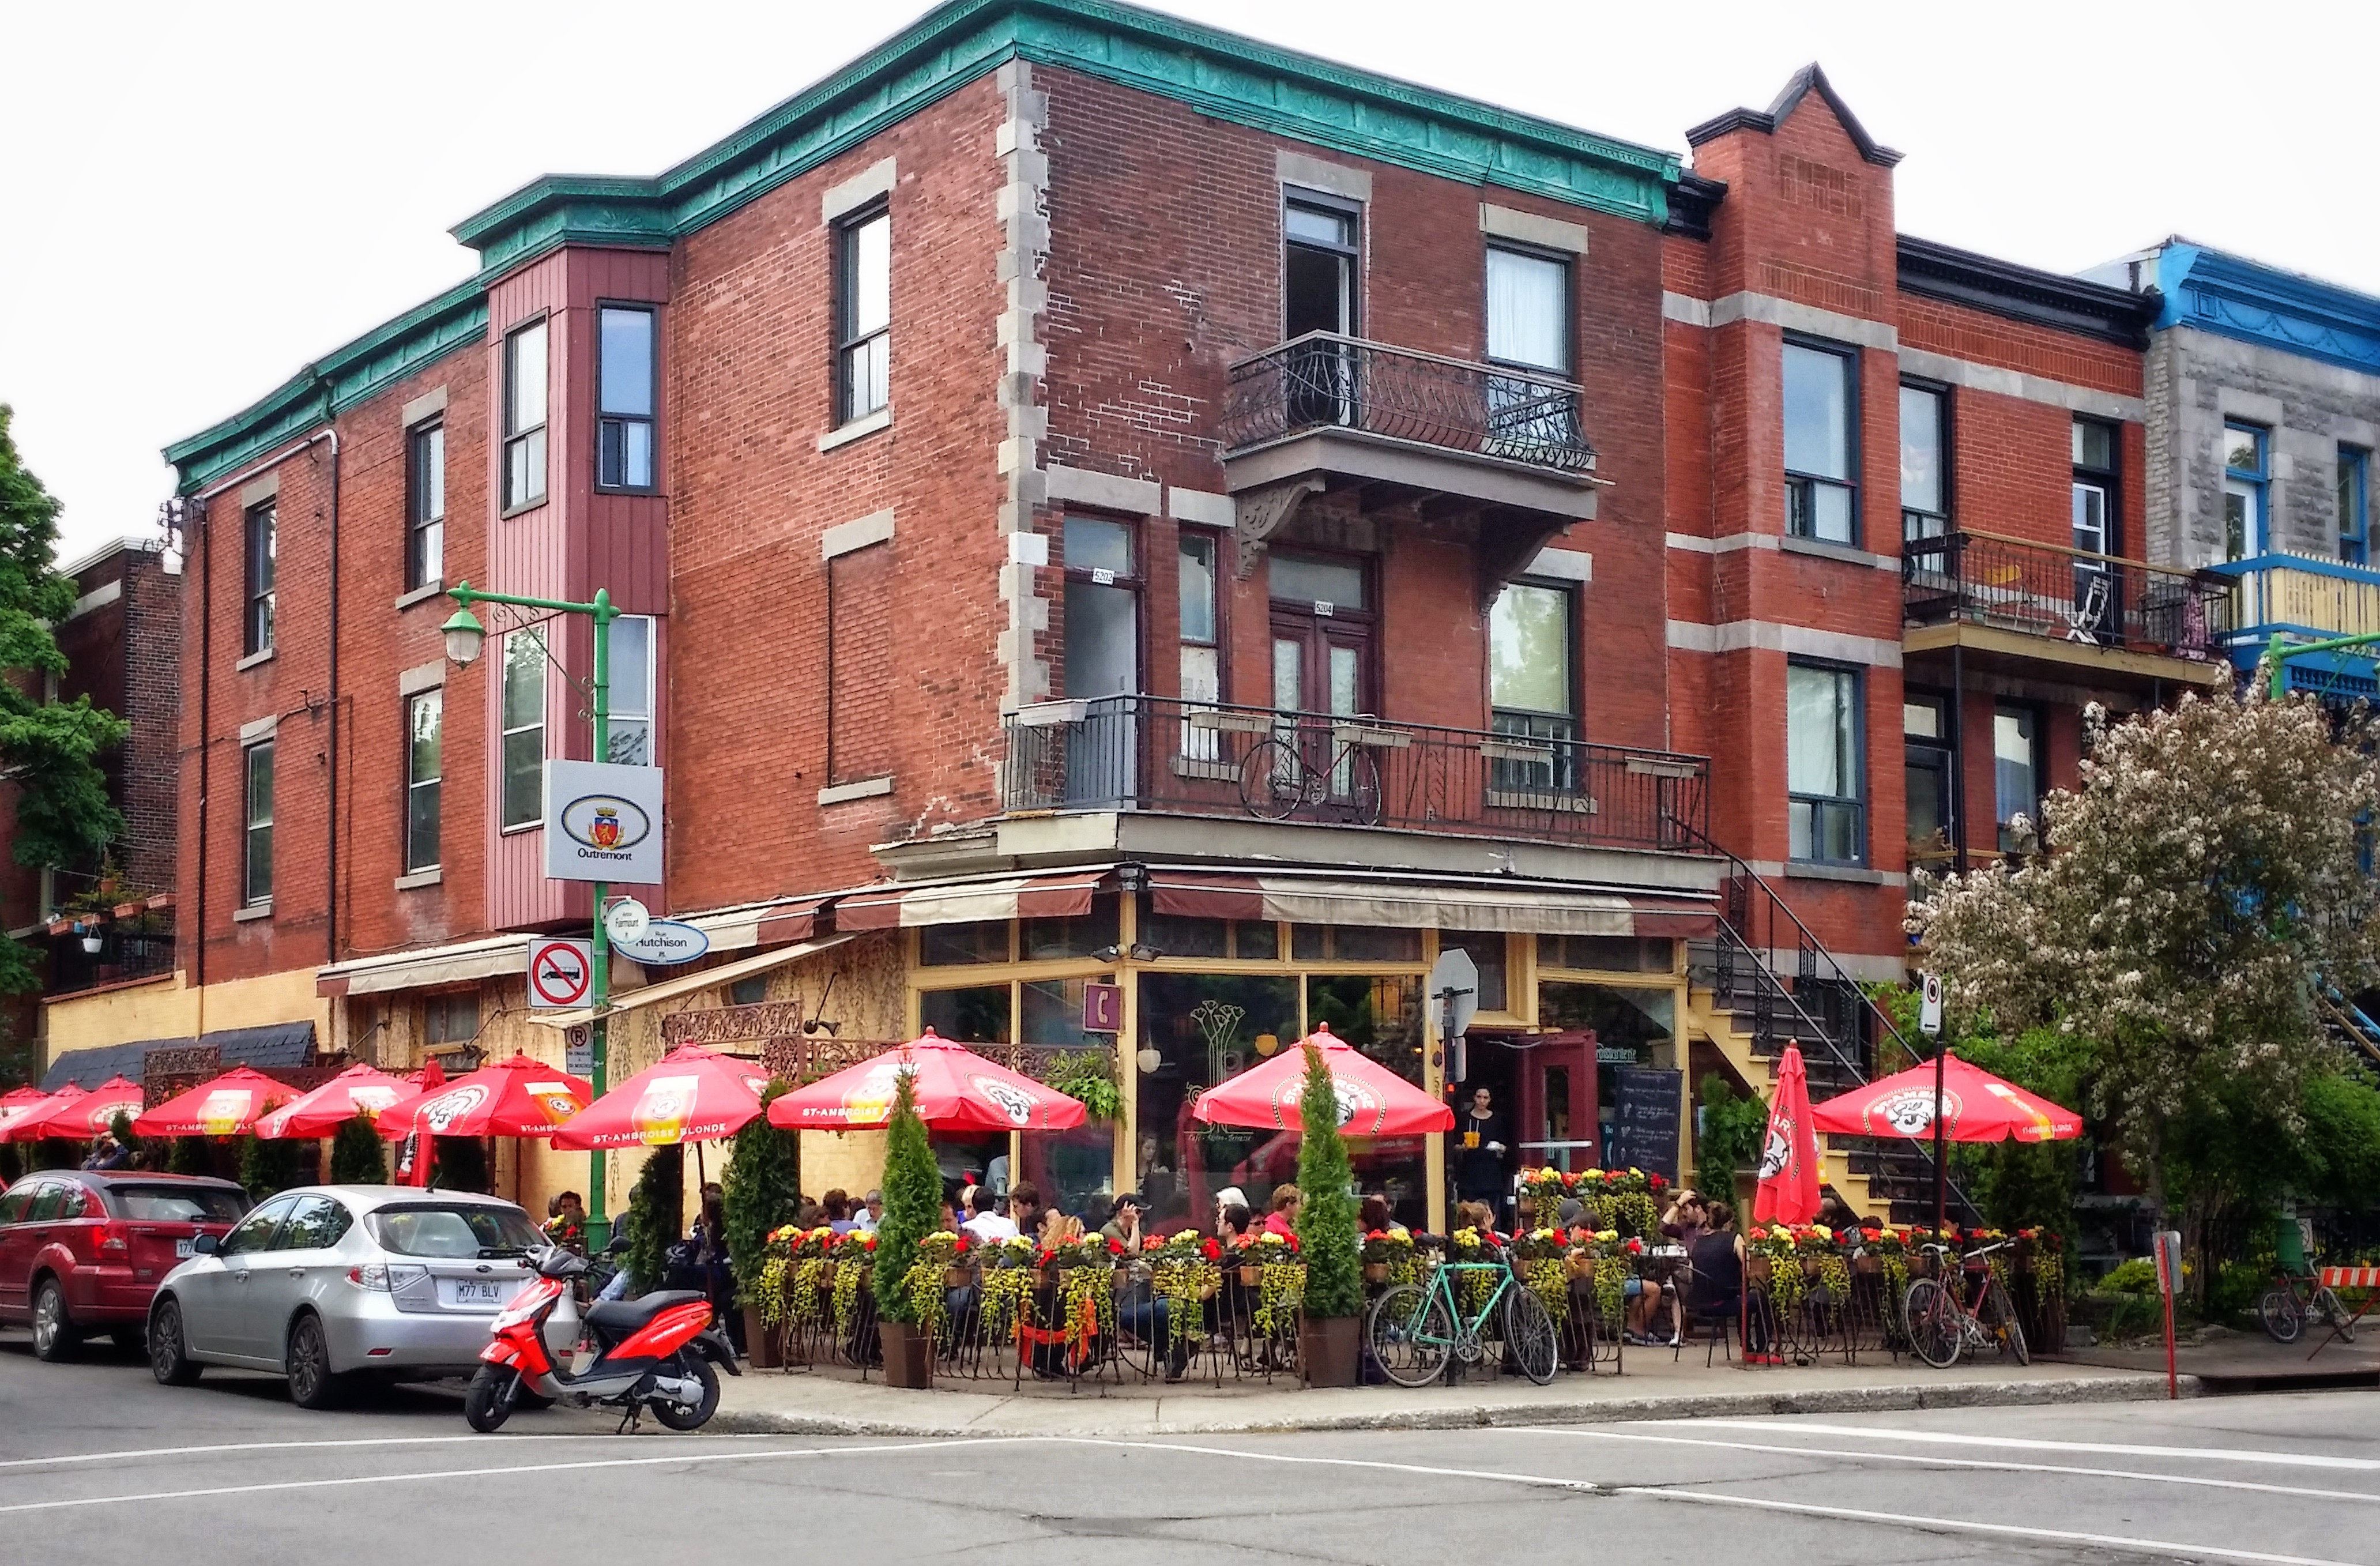 Diners at an outside eating area of a brick, two story street corner restaurant.